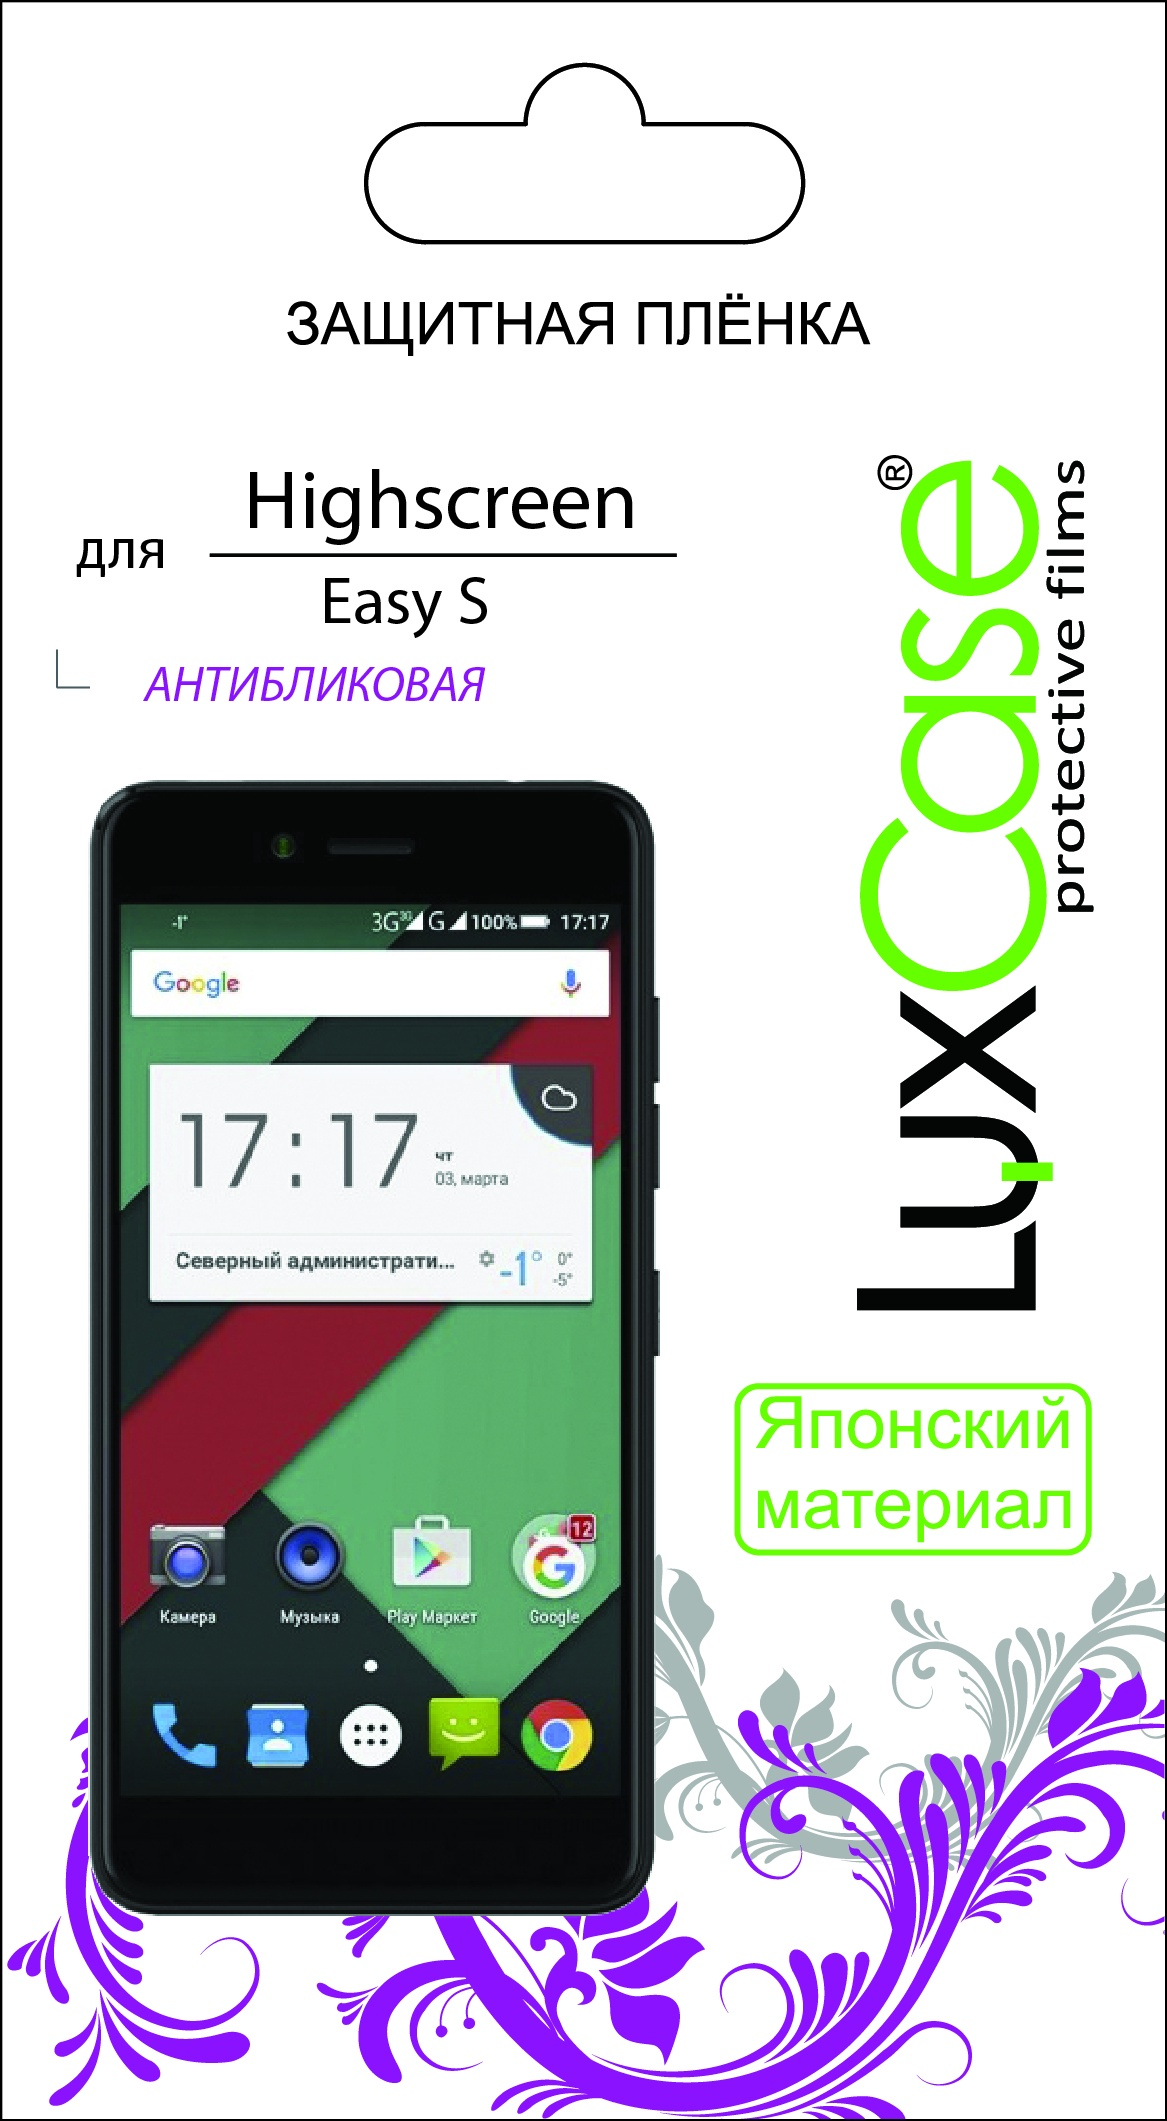 Пленка Highscreen Easy S / антибликовая highscreen easy l pro черный